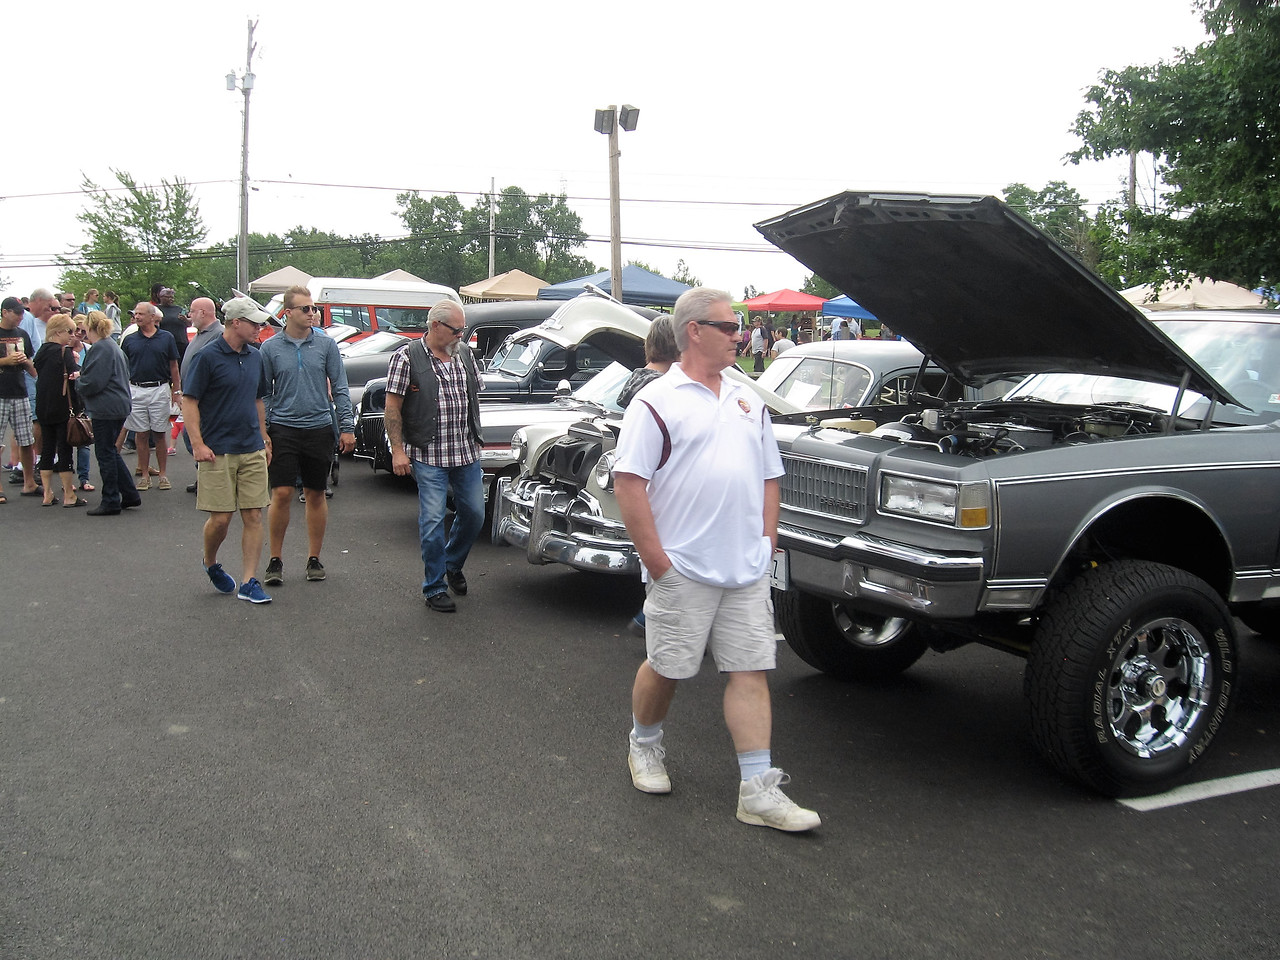 BOB SANDRICK / GAZETTE Hundreds of visitors to Mapleside Farms check out more than 60 classic and antique cars on Sunday during a peach festival event.